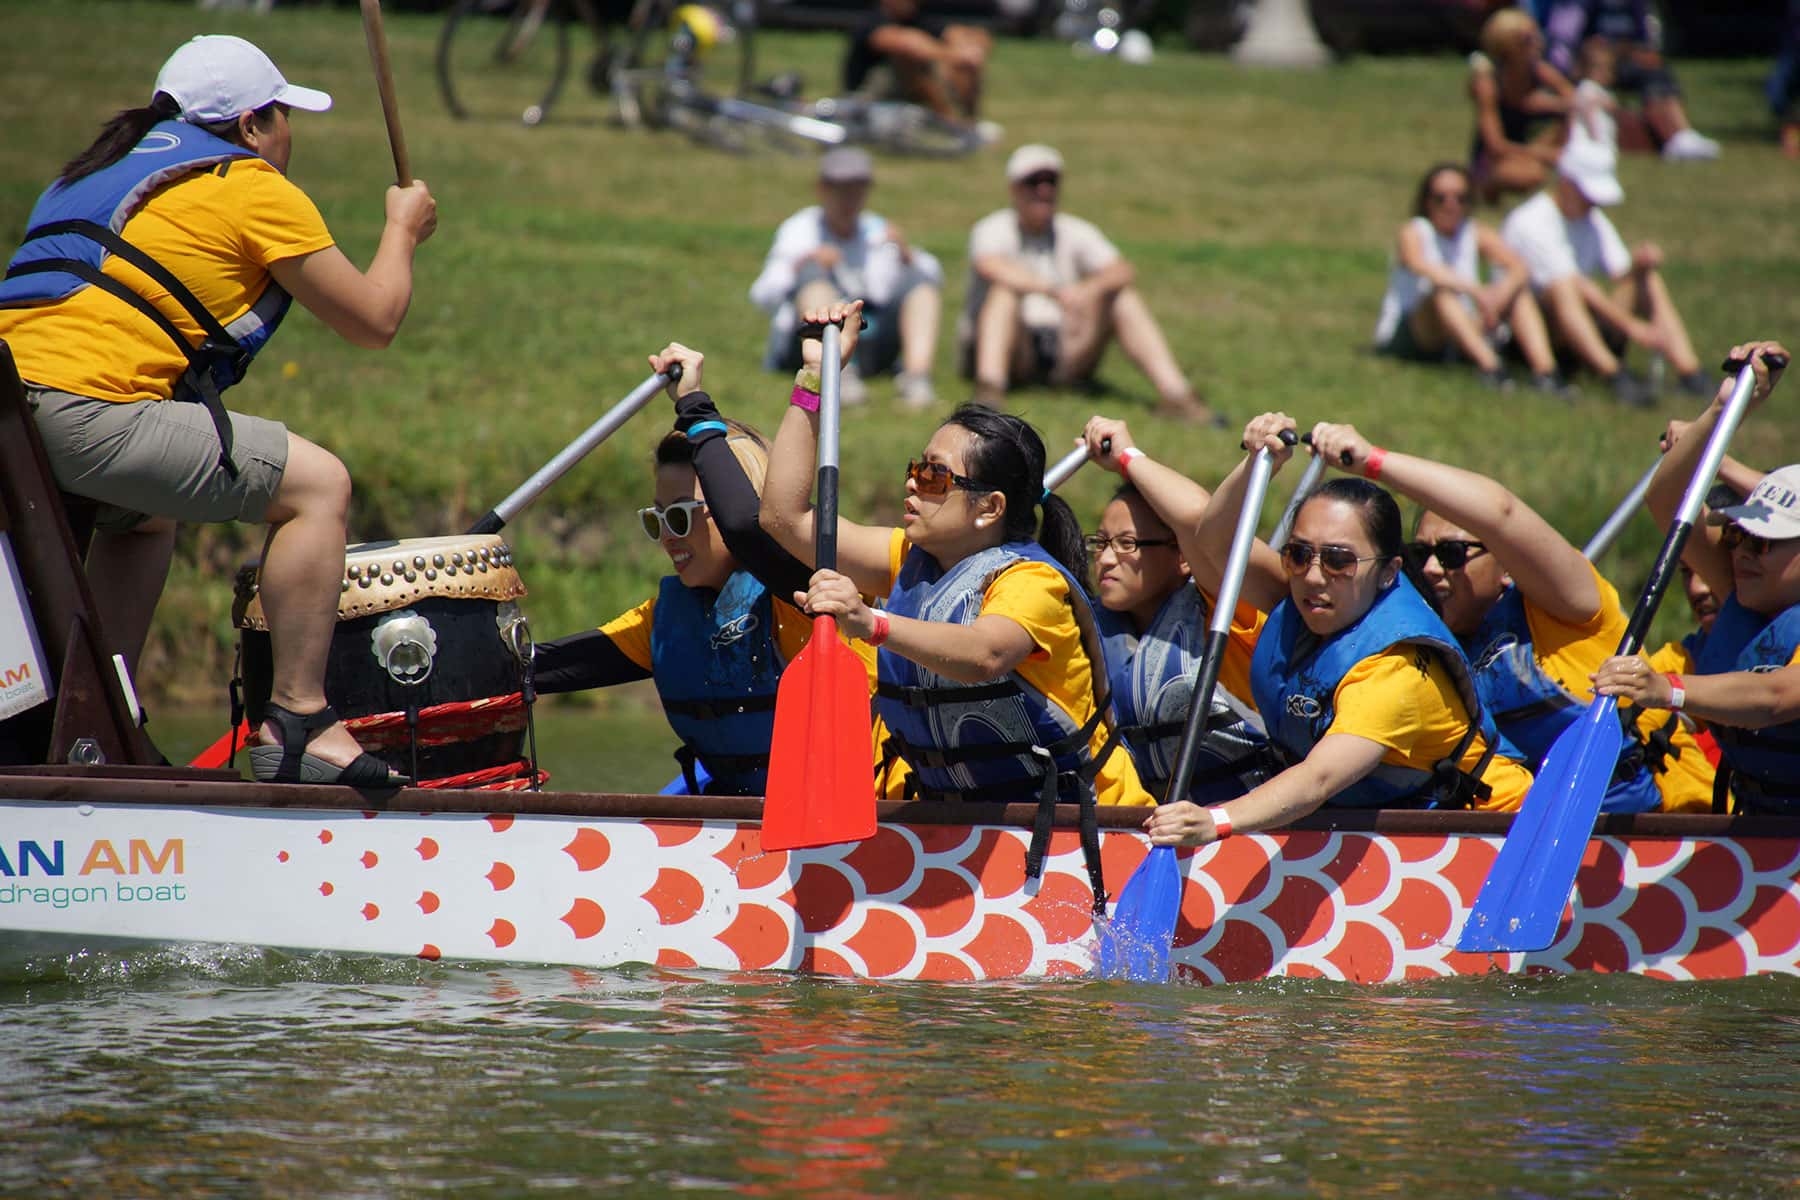 04a_073016_DragonBoatRace_4077